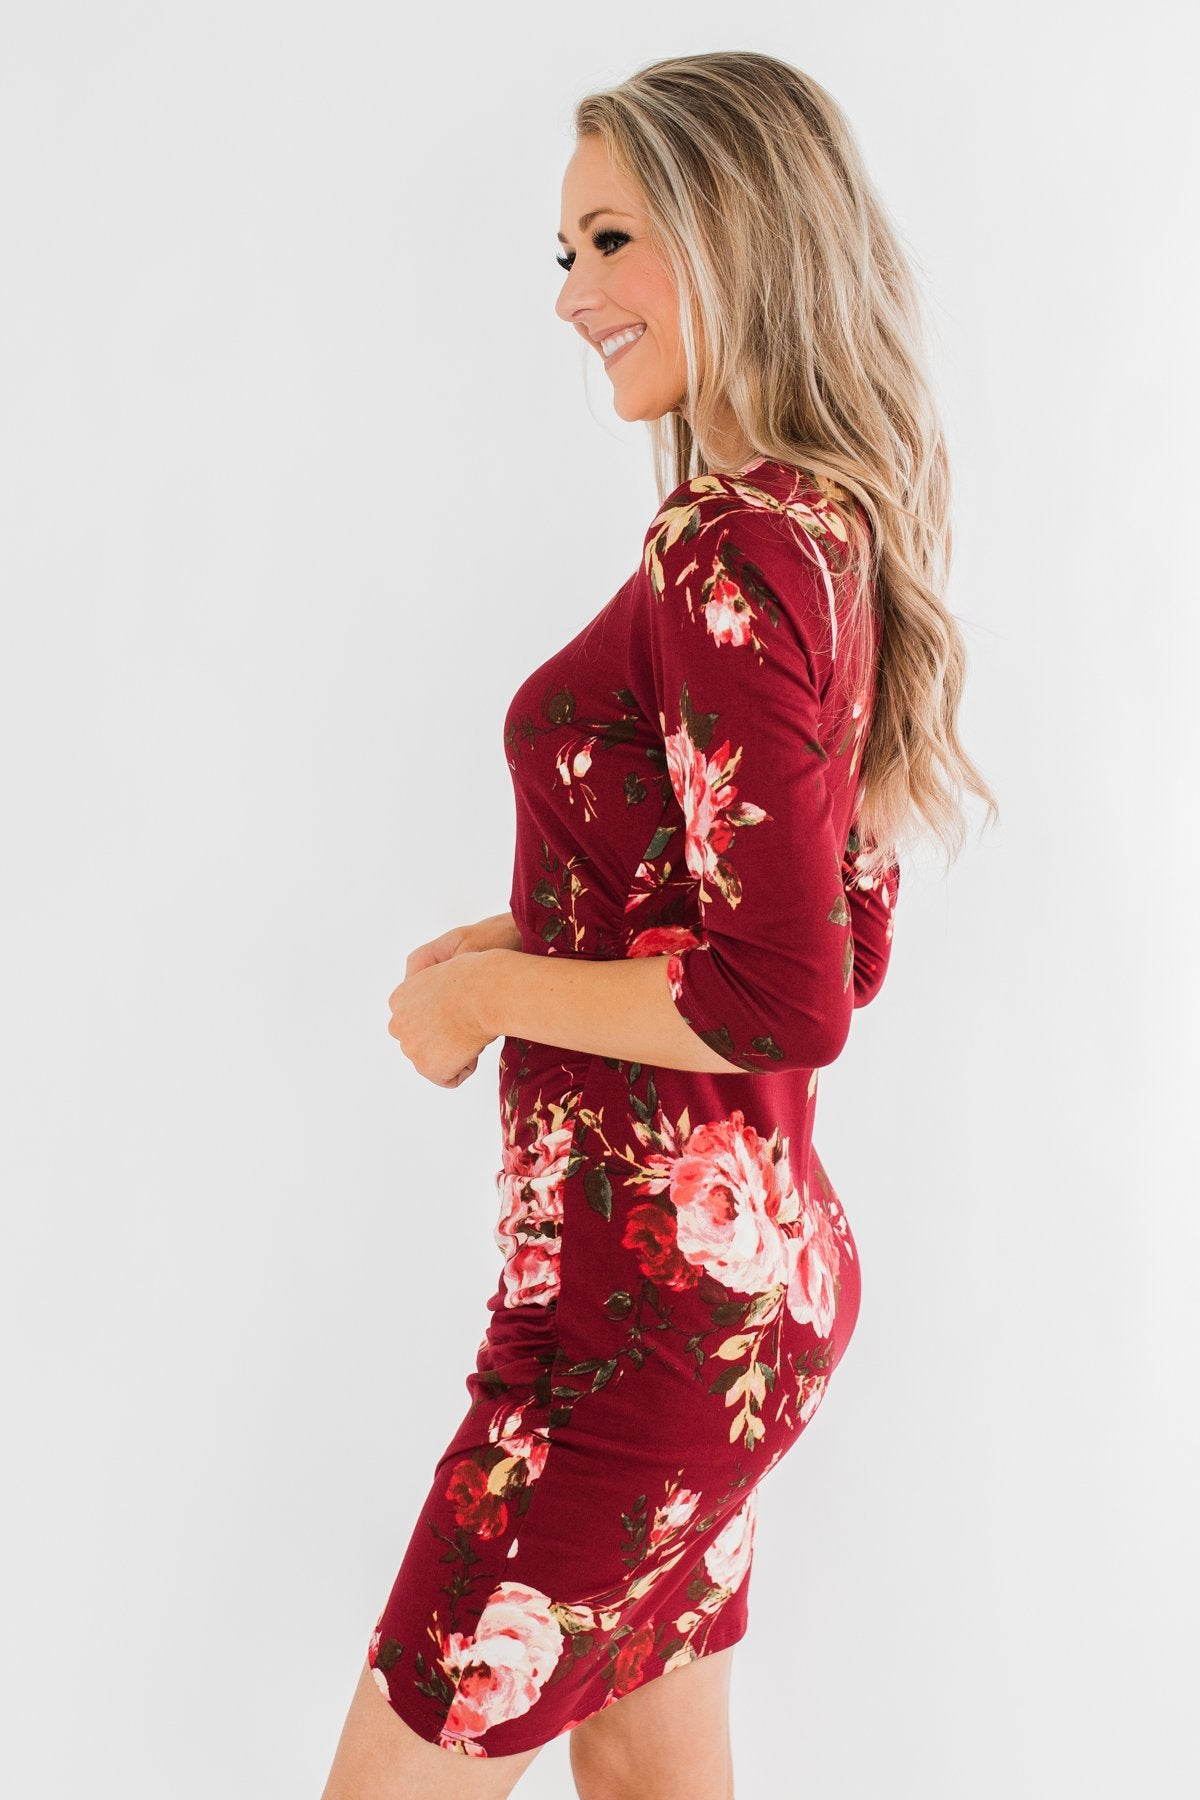 Stand In Your Love Floral Dress- Burgundy